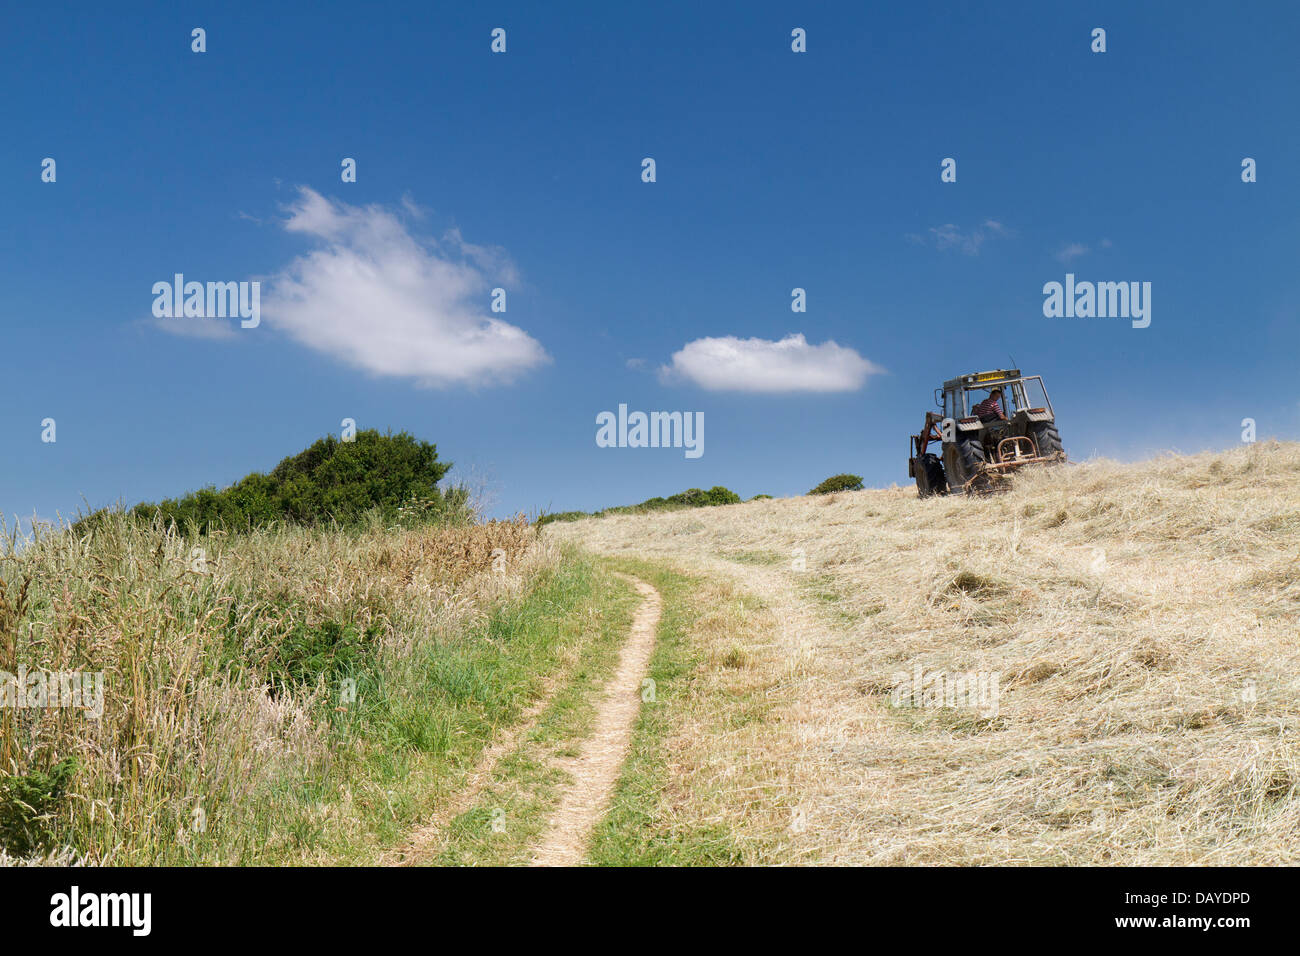 Make hay while the sun shines - Stock Image